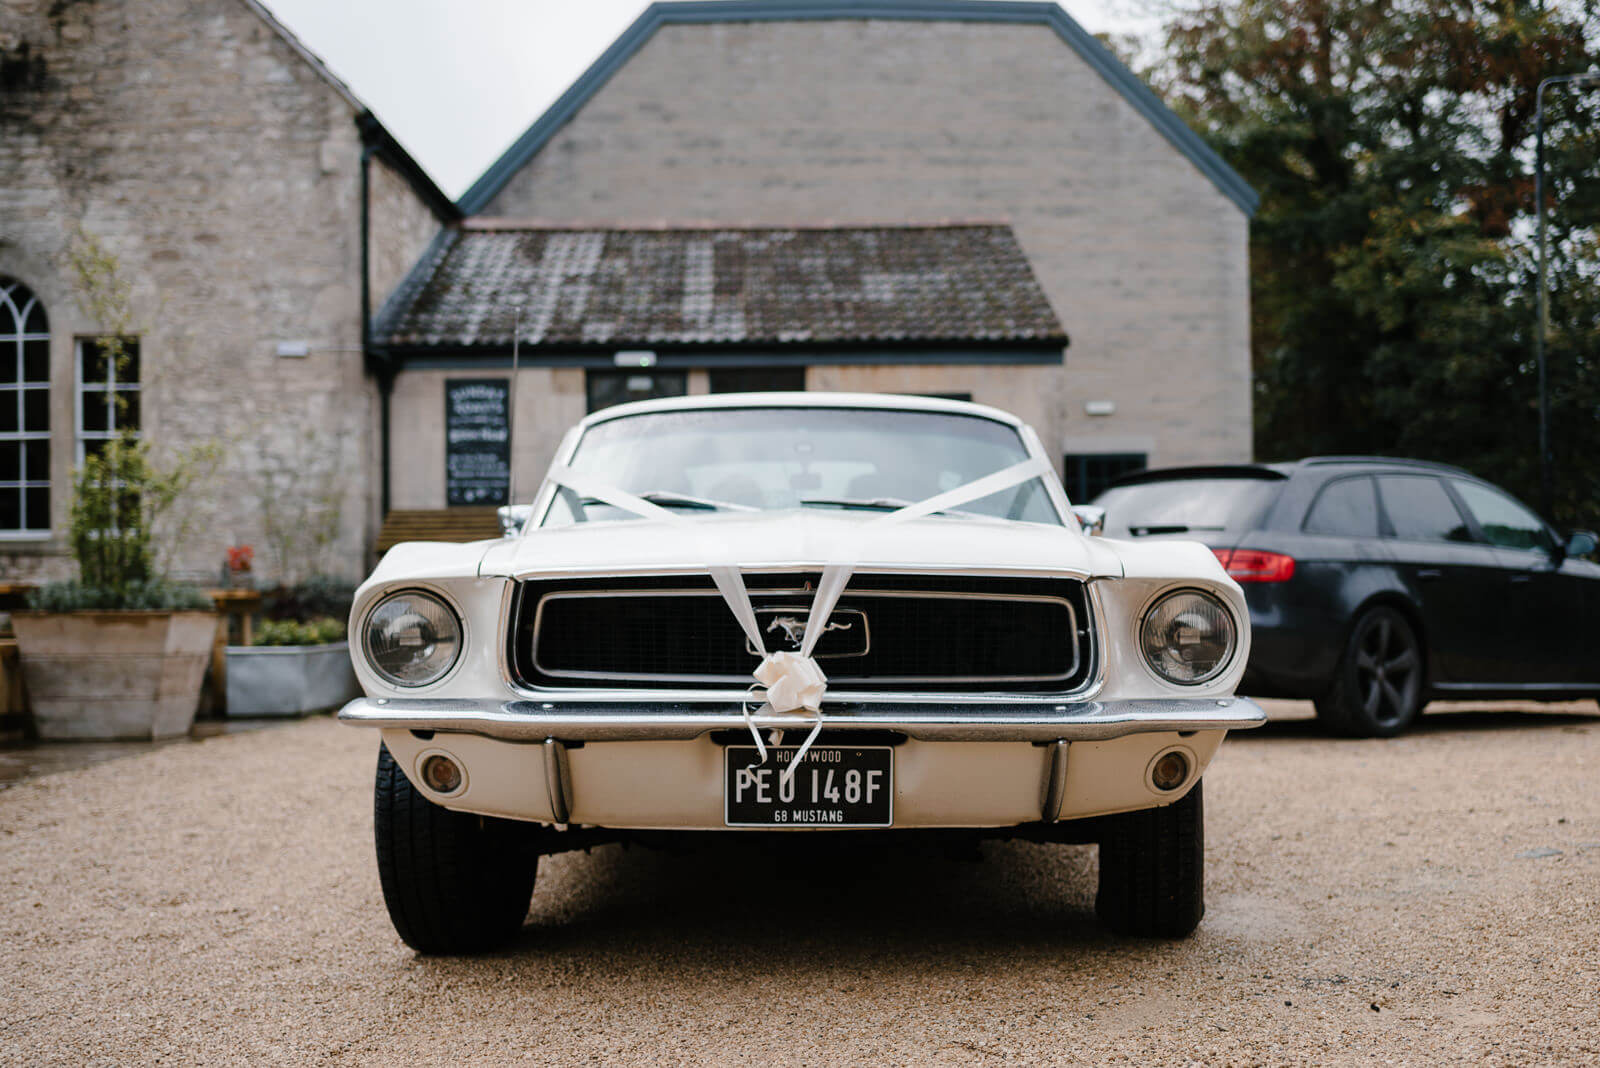 Brides vintage cream Mustang Fastback wedding car outside Timbrell's Yard